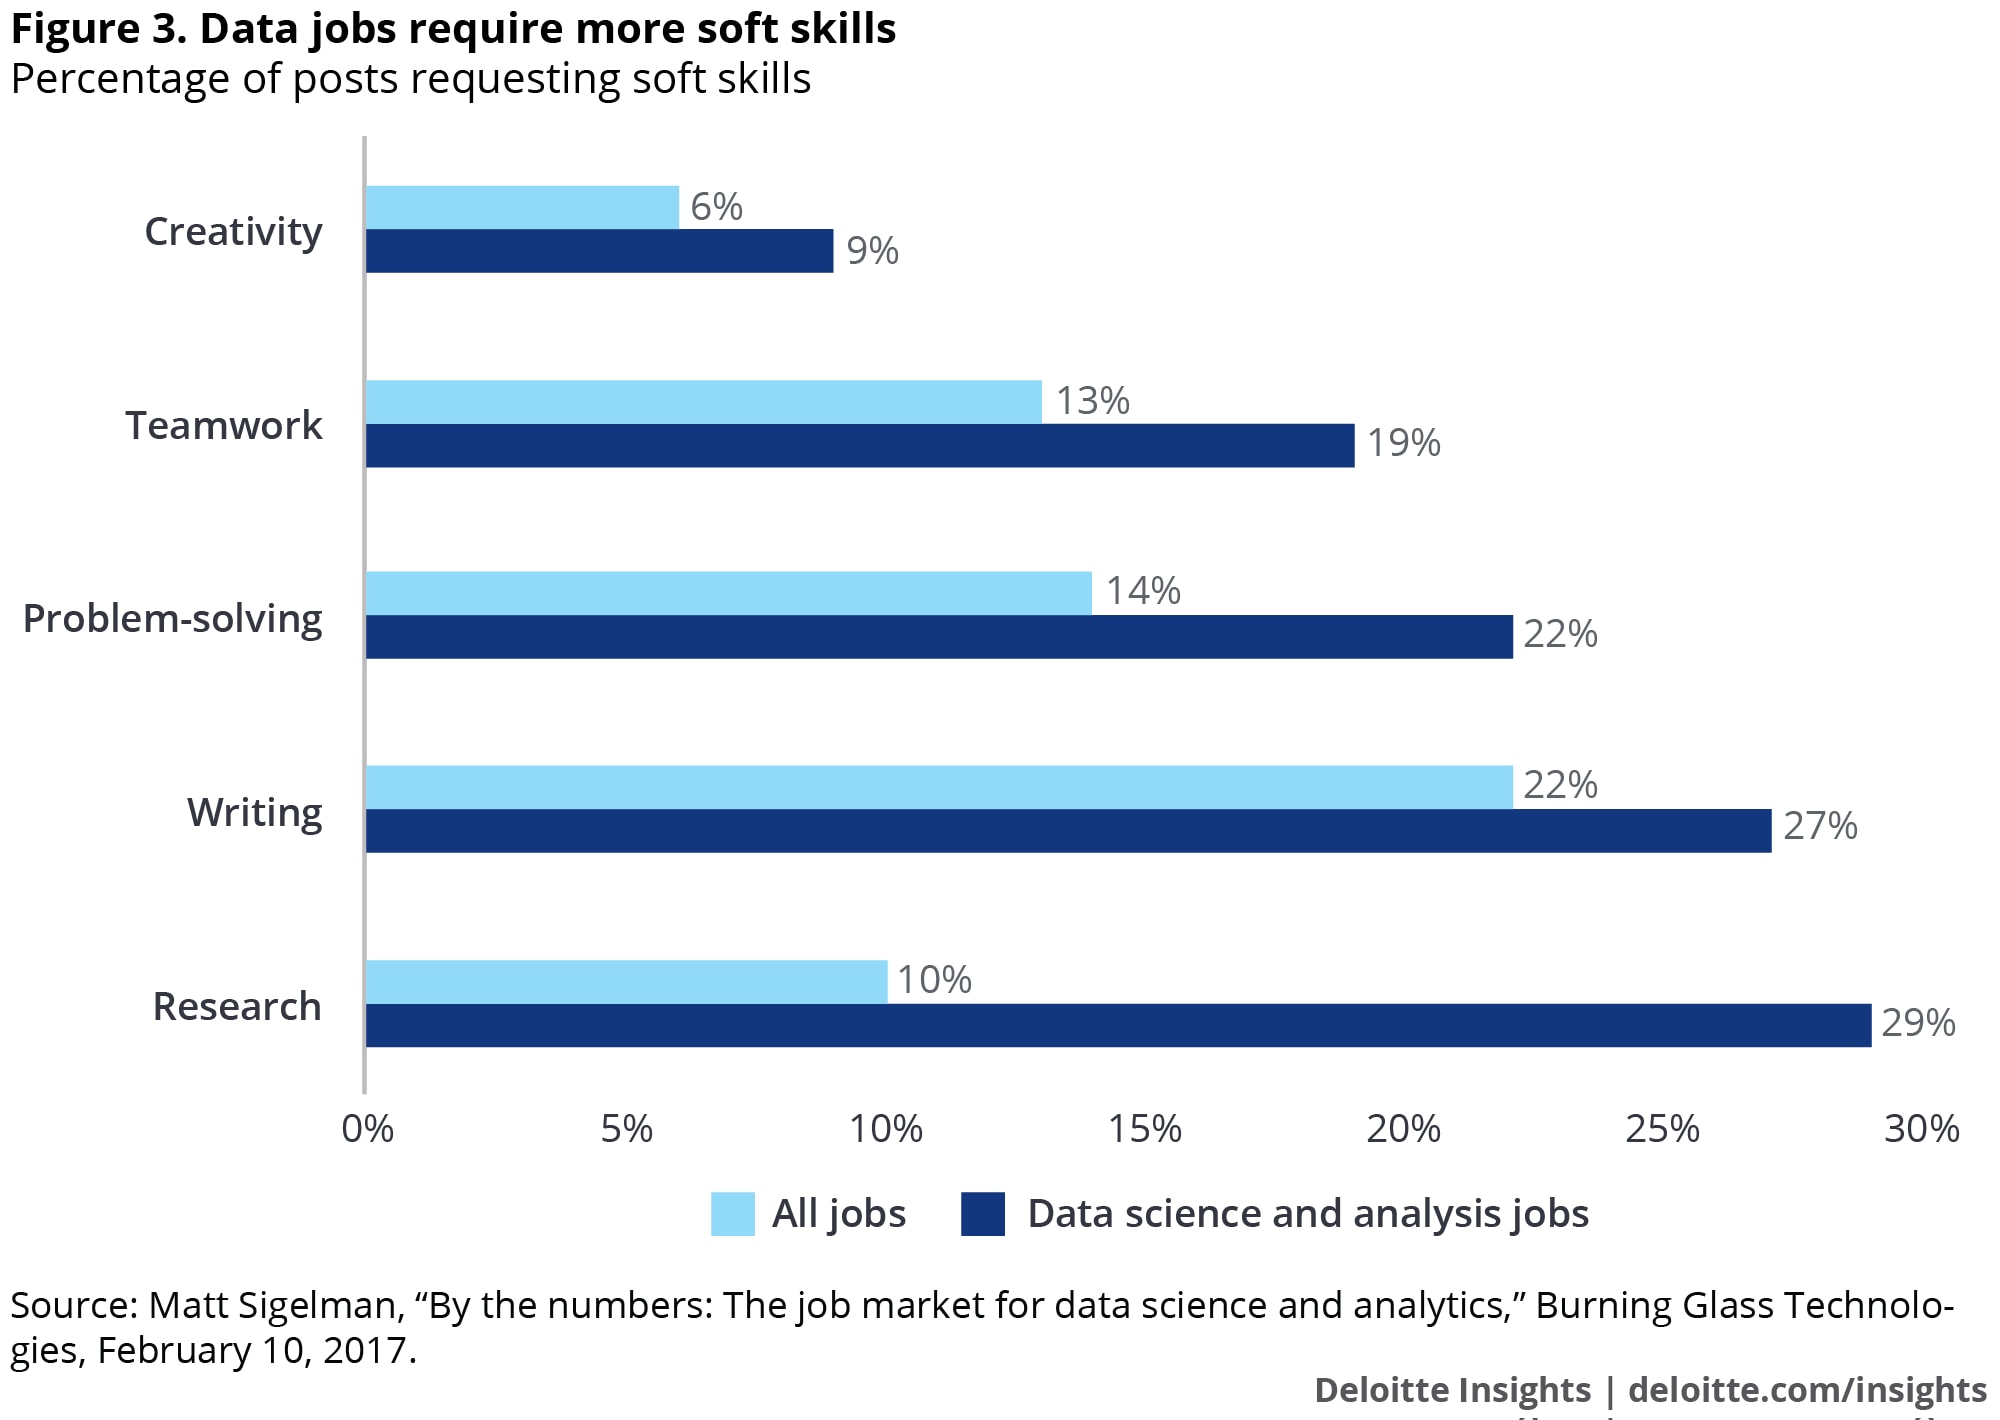 Data jobs require more soft skills